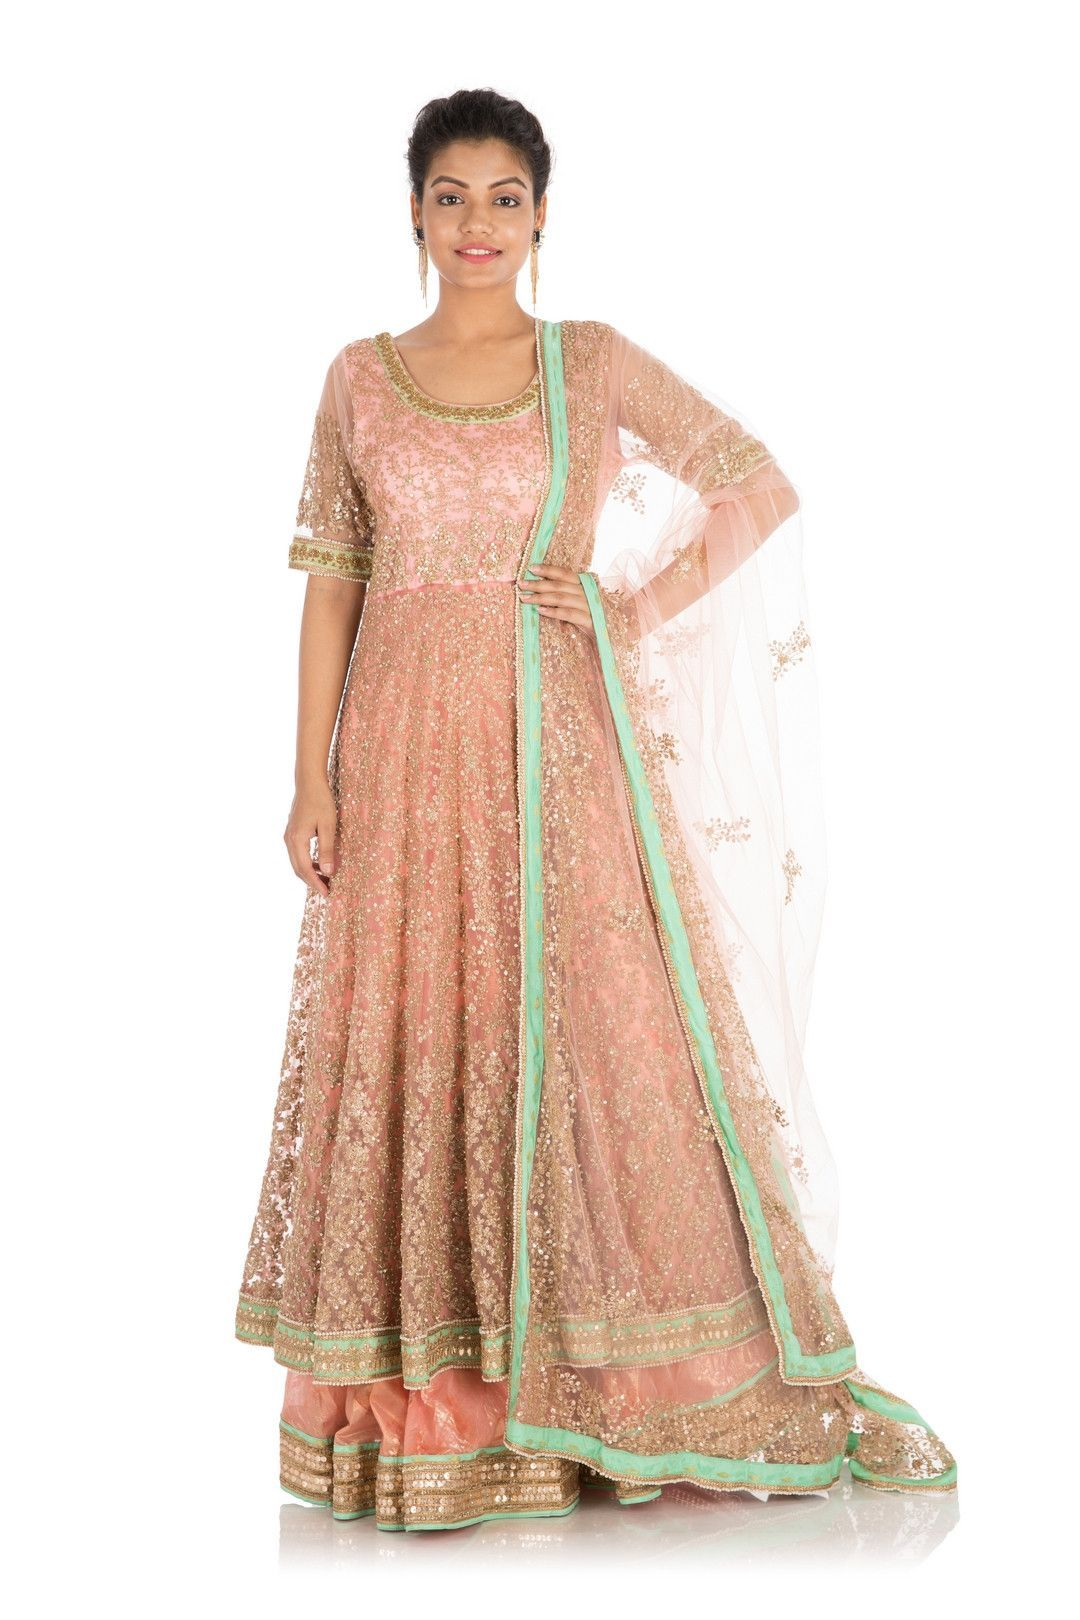 76404a858a1f35 Full Hand Embroidered Pretty Peach Jacket Lehenga Set